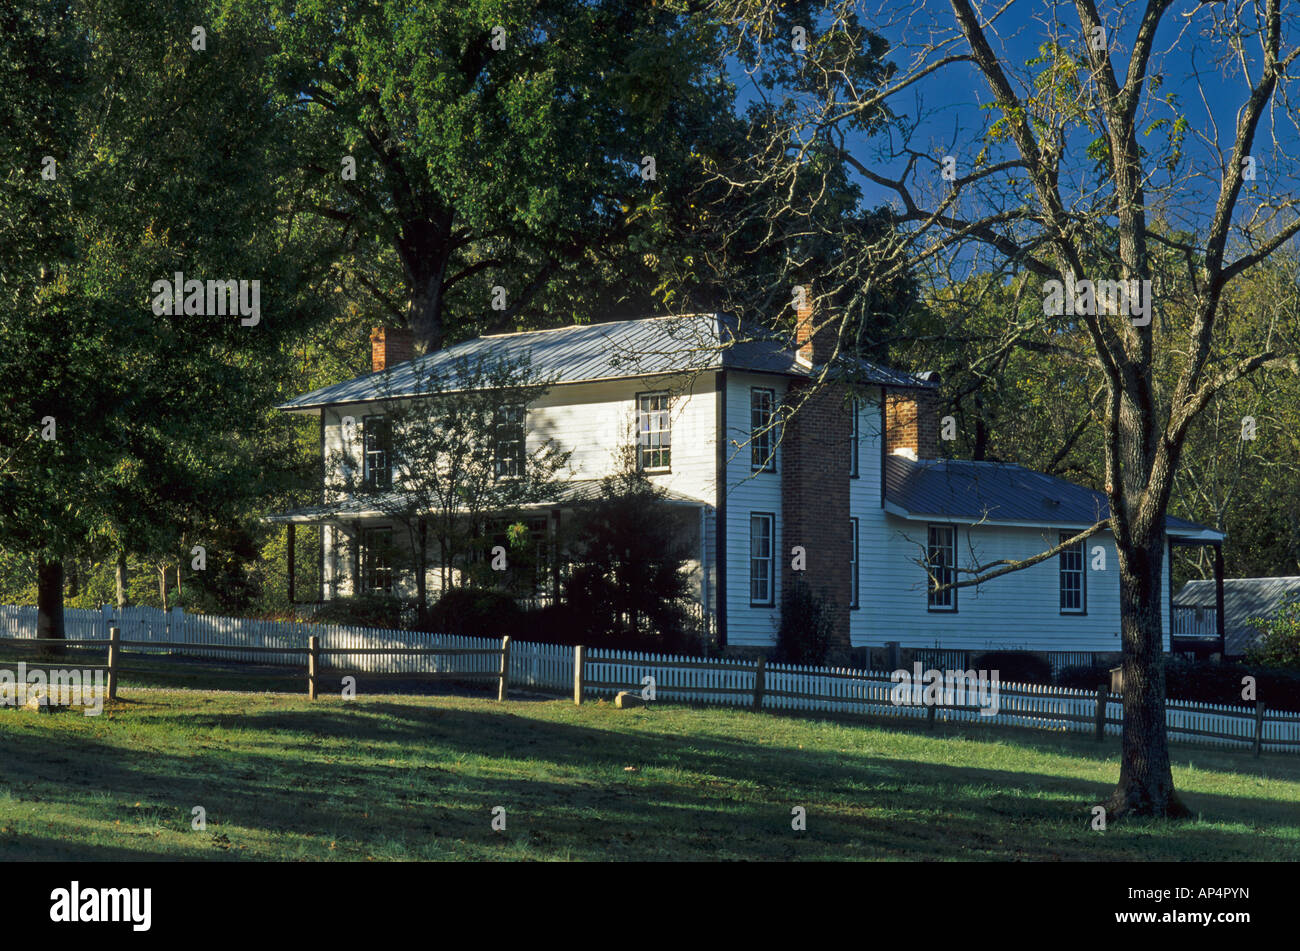 McCowen Mangum House, Durham, North Carolina, USA - Stock Image